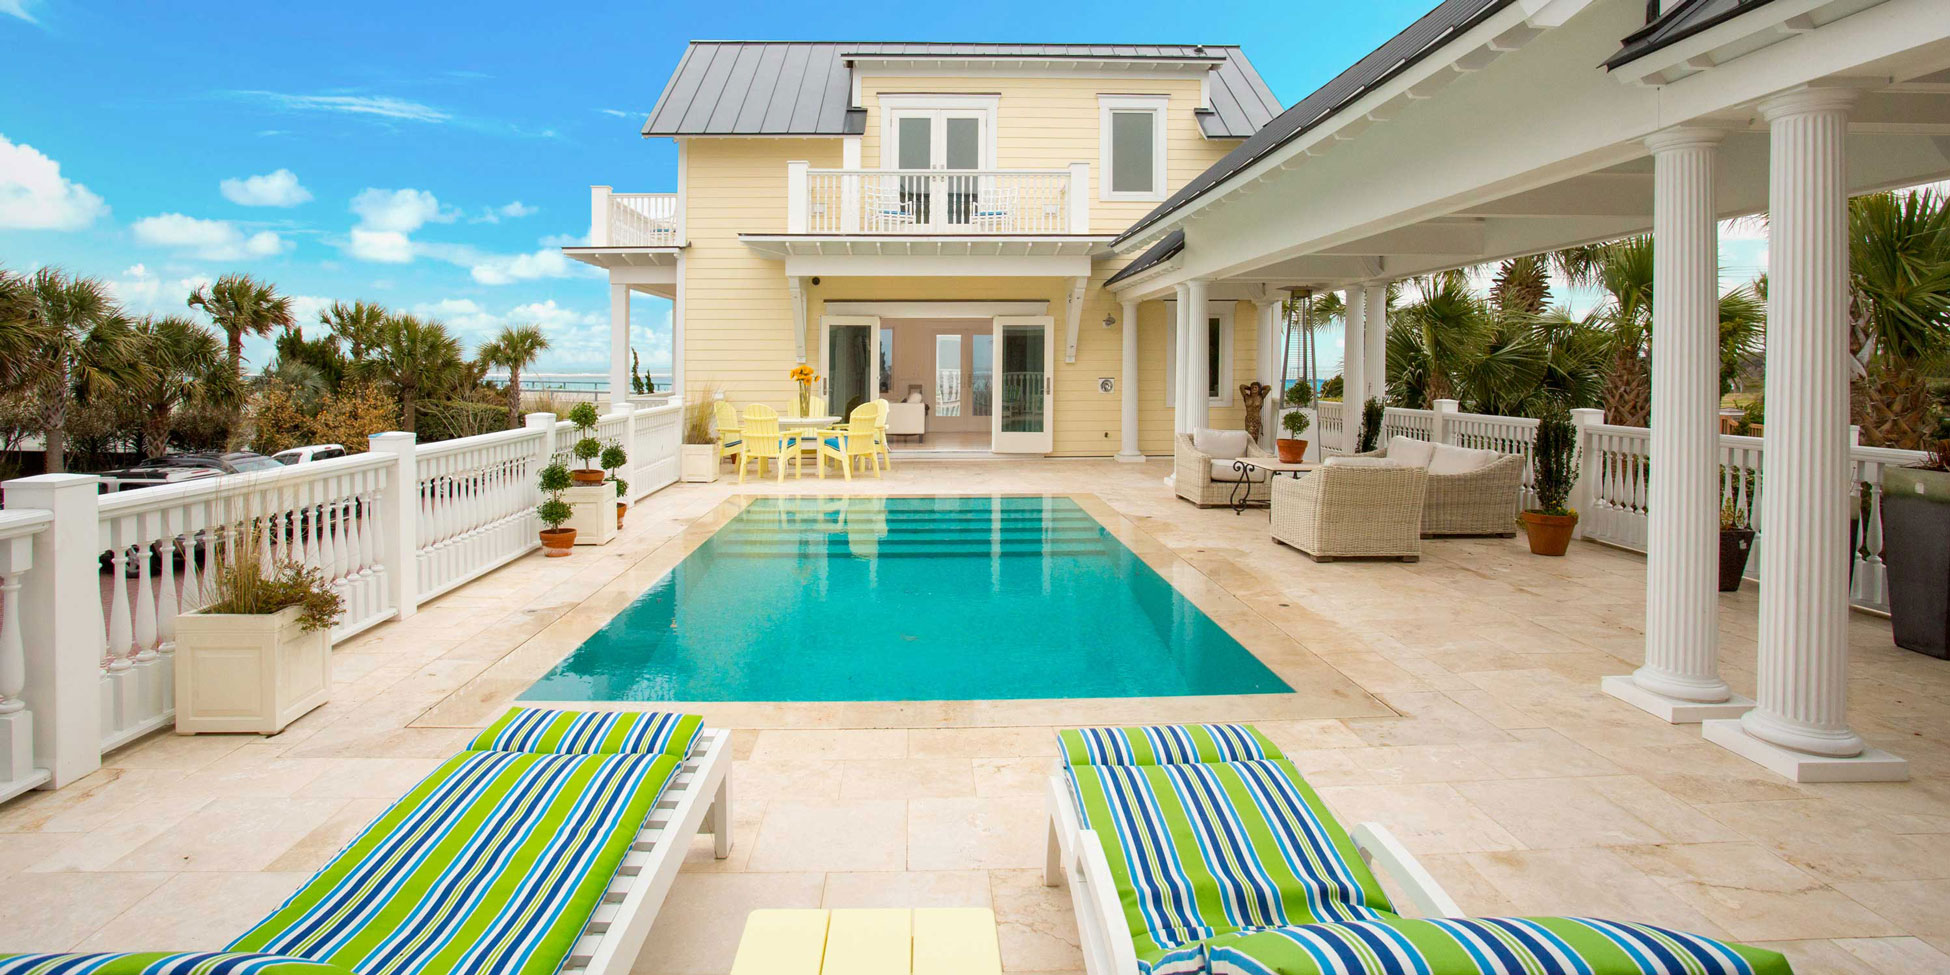 Design services aqua blue pools south carolina custom for Pool design services